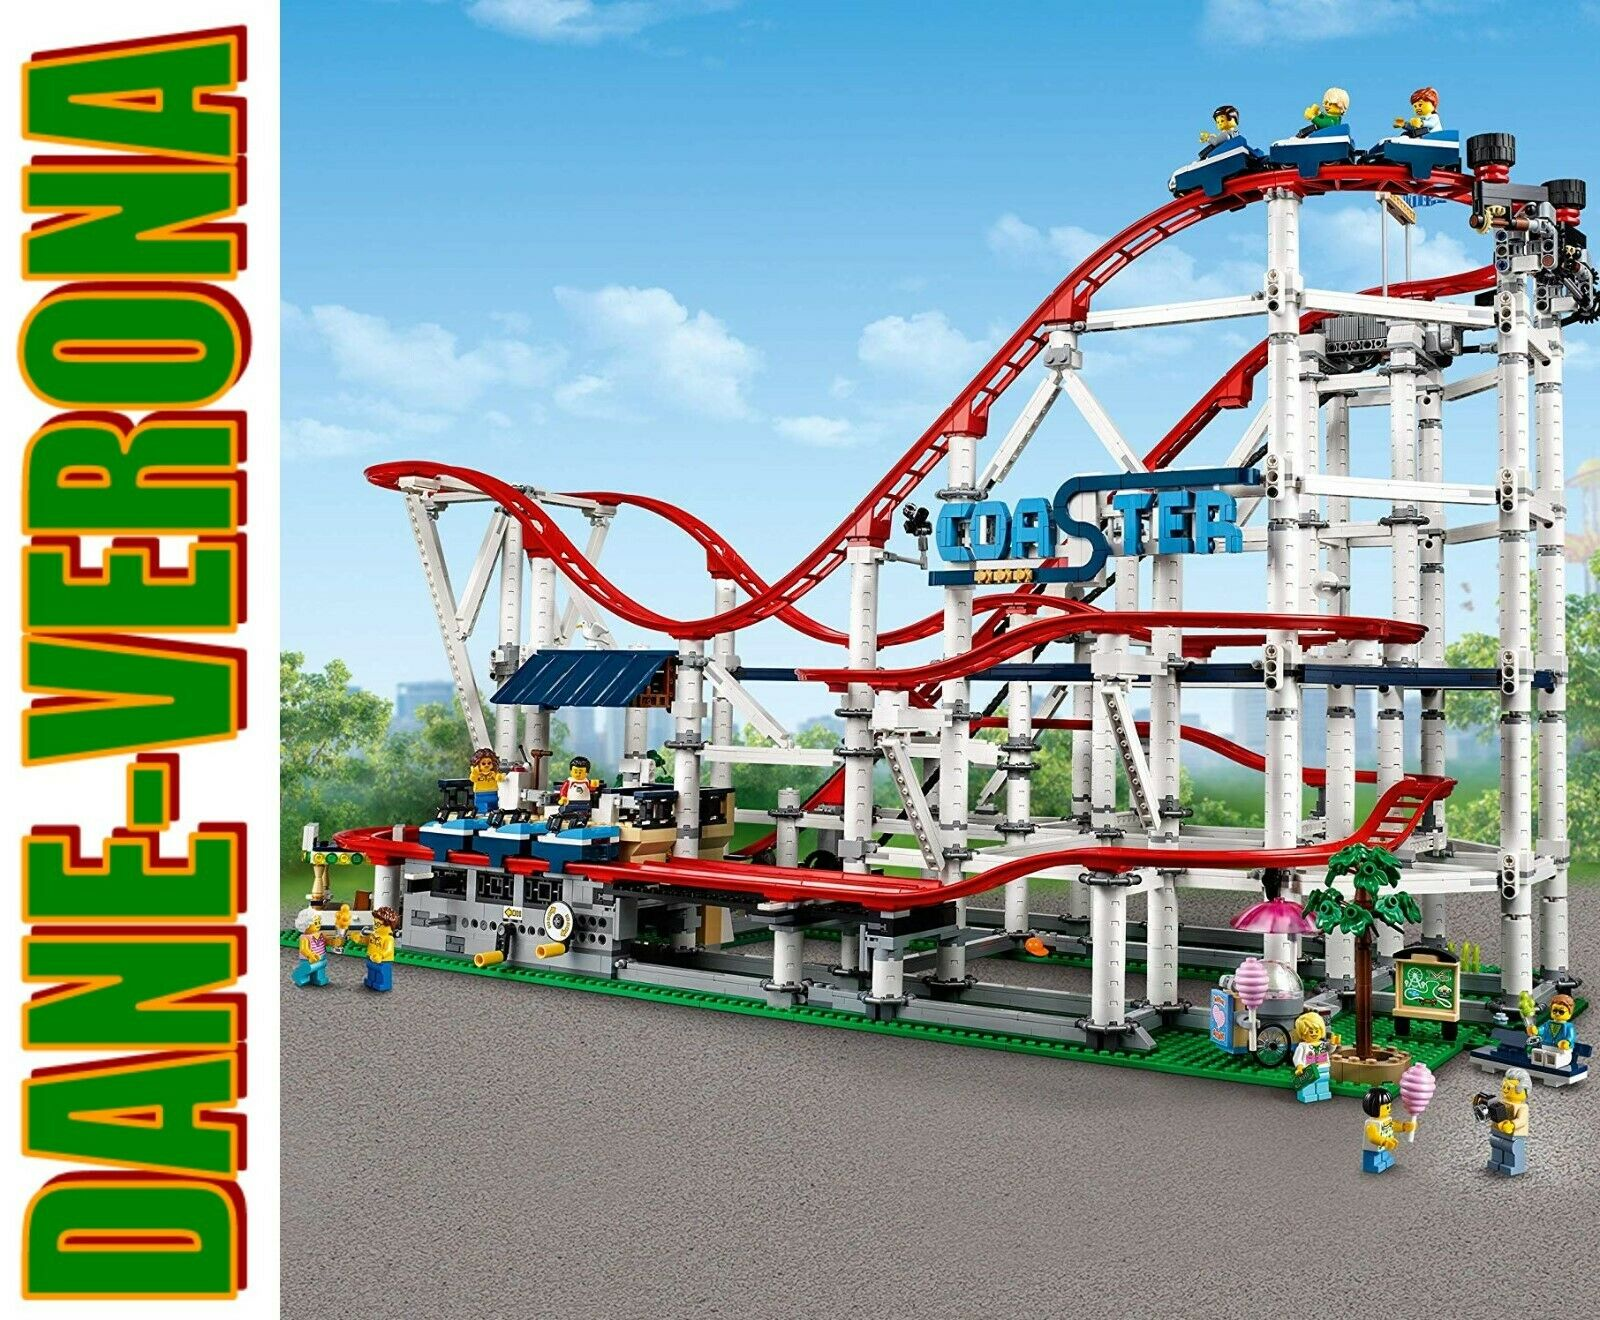 Lego  Montagne Russe  Roller Coaster 10261 specialeeE COLLEZIONISTI